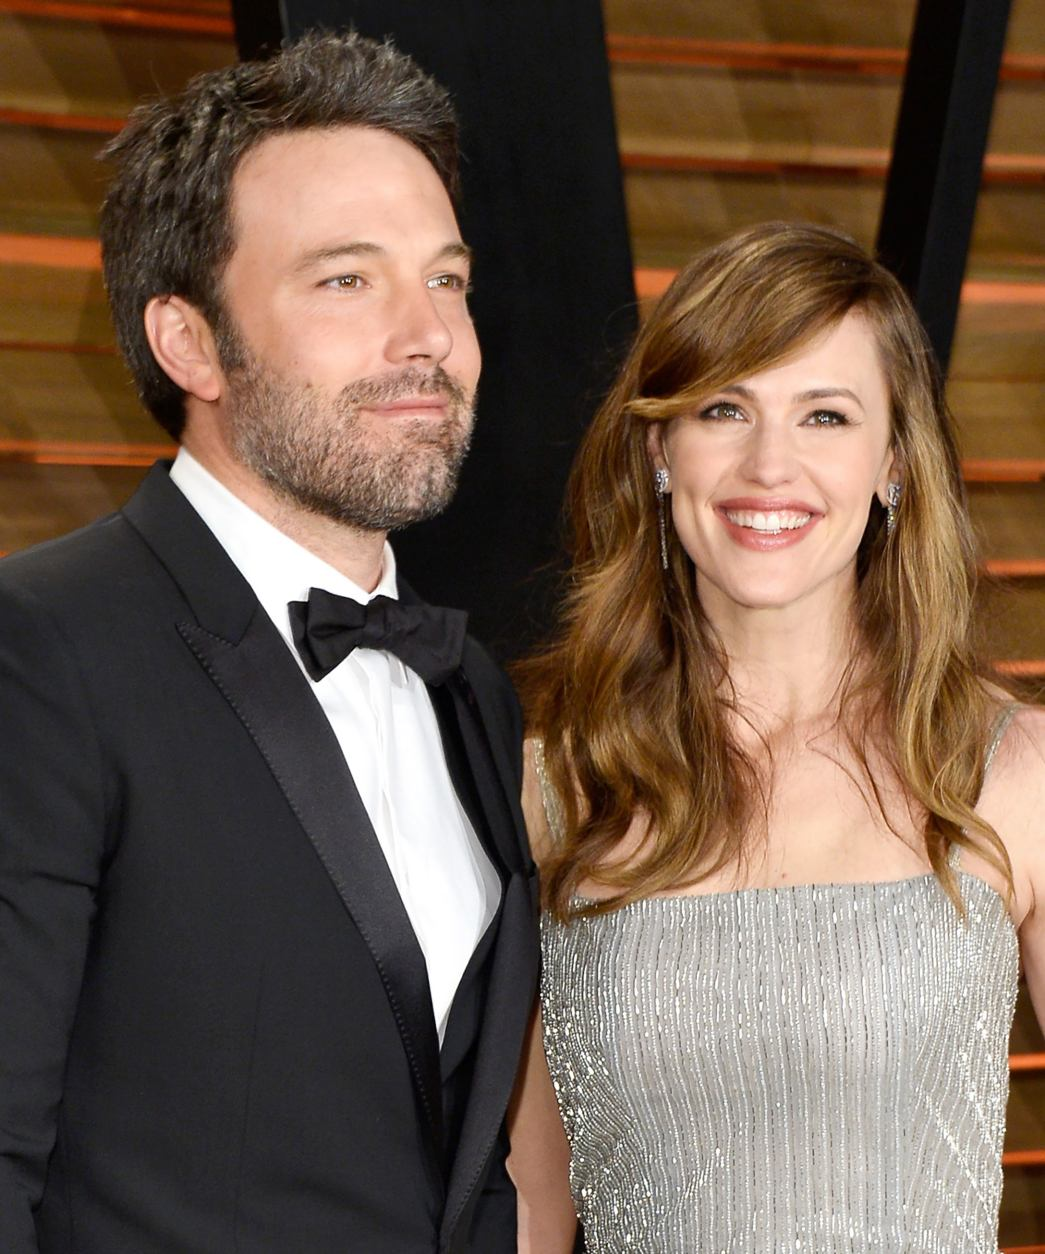 Ben Affleck Says His Divorce And Real-Life Experiences Made Him A Better Actor